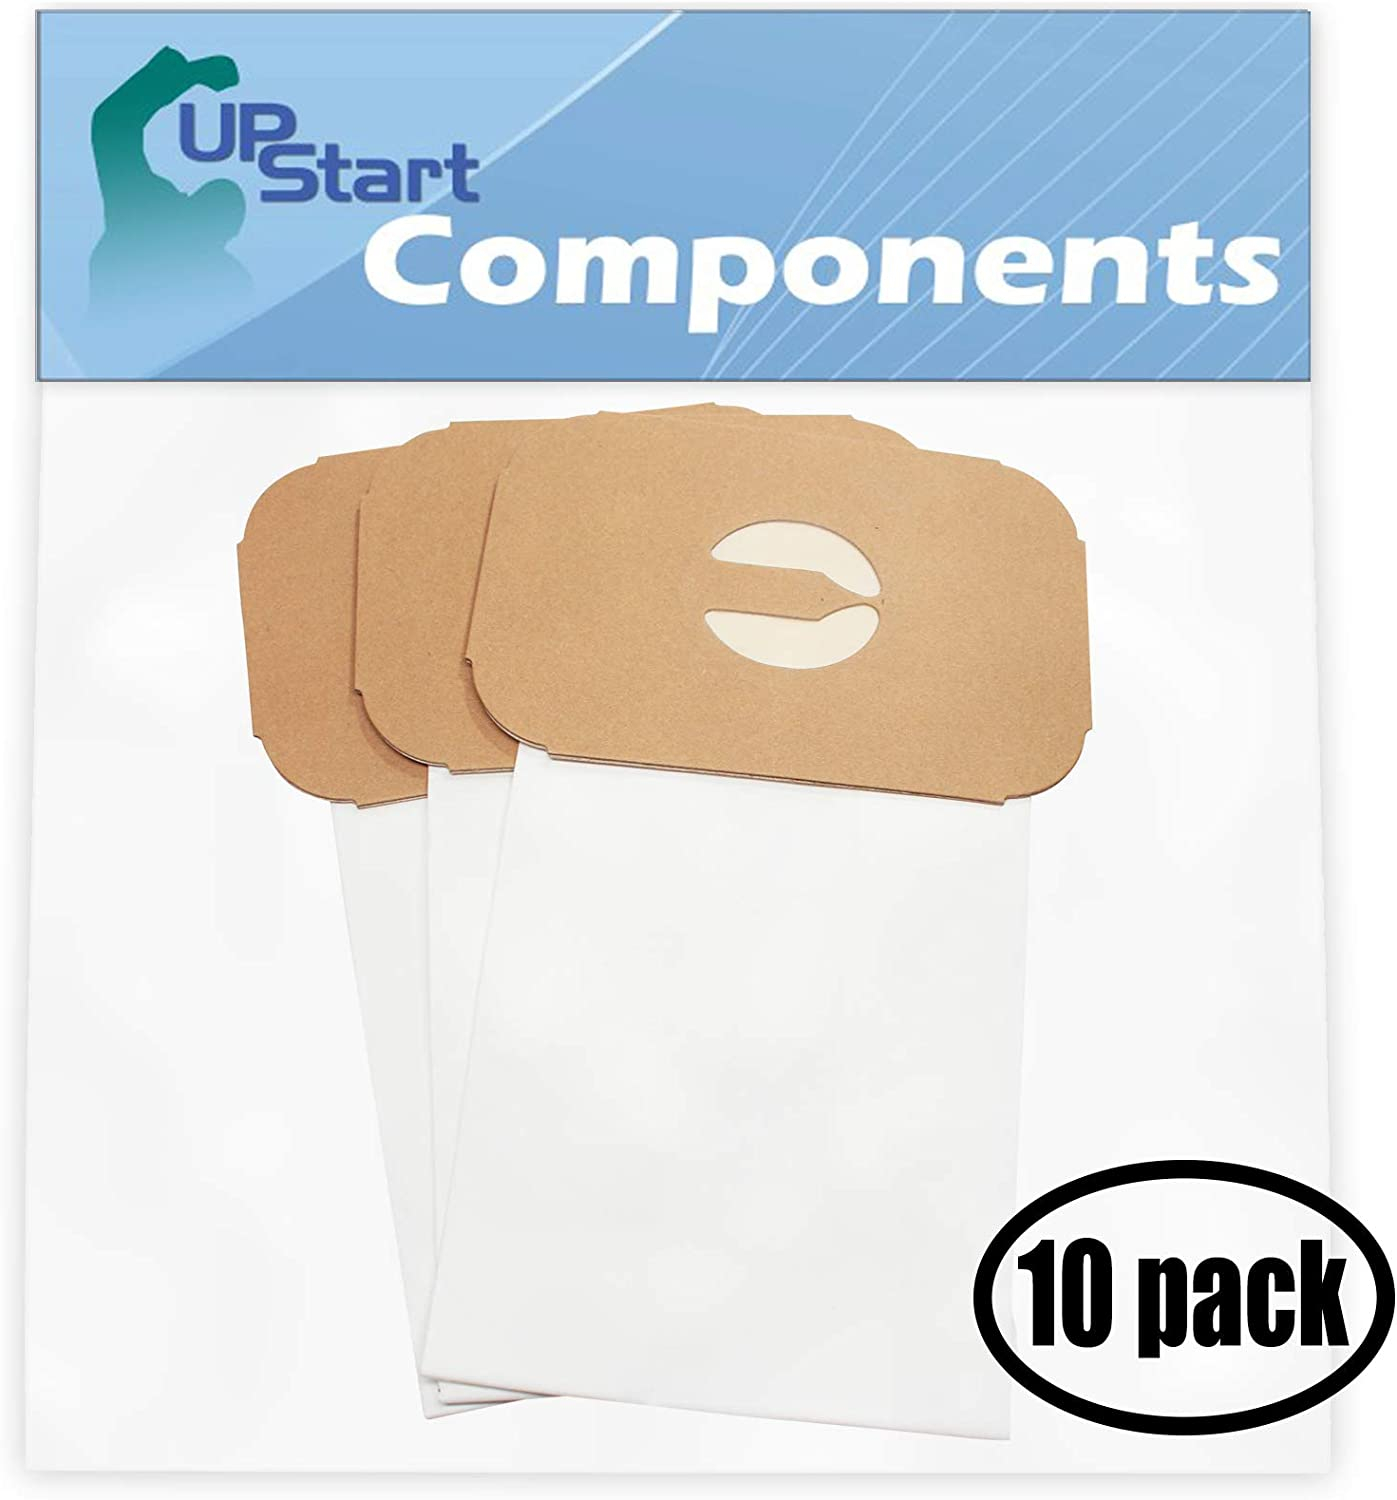 30 Replacement Style C bag for Electrolux, Aerus - Compatible with Electrolux Model G, Electrolux Ambassador, Electrolux Model L, Electrolux Super J, Electrolux Silverado, Electrolux Diamond Jubilee, Aerus Lux Legacy, Electrolux Model E, Electrolux 1521